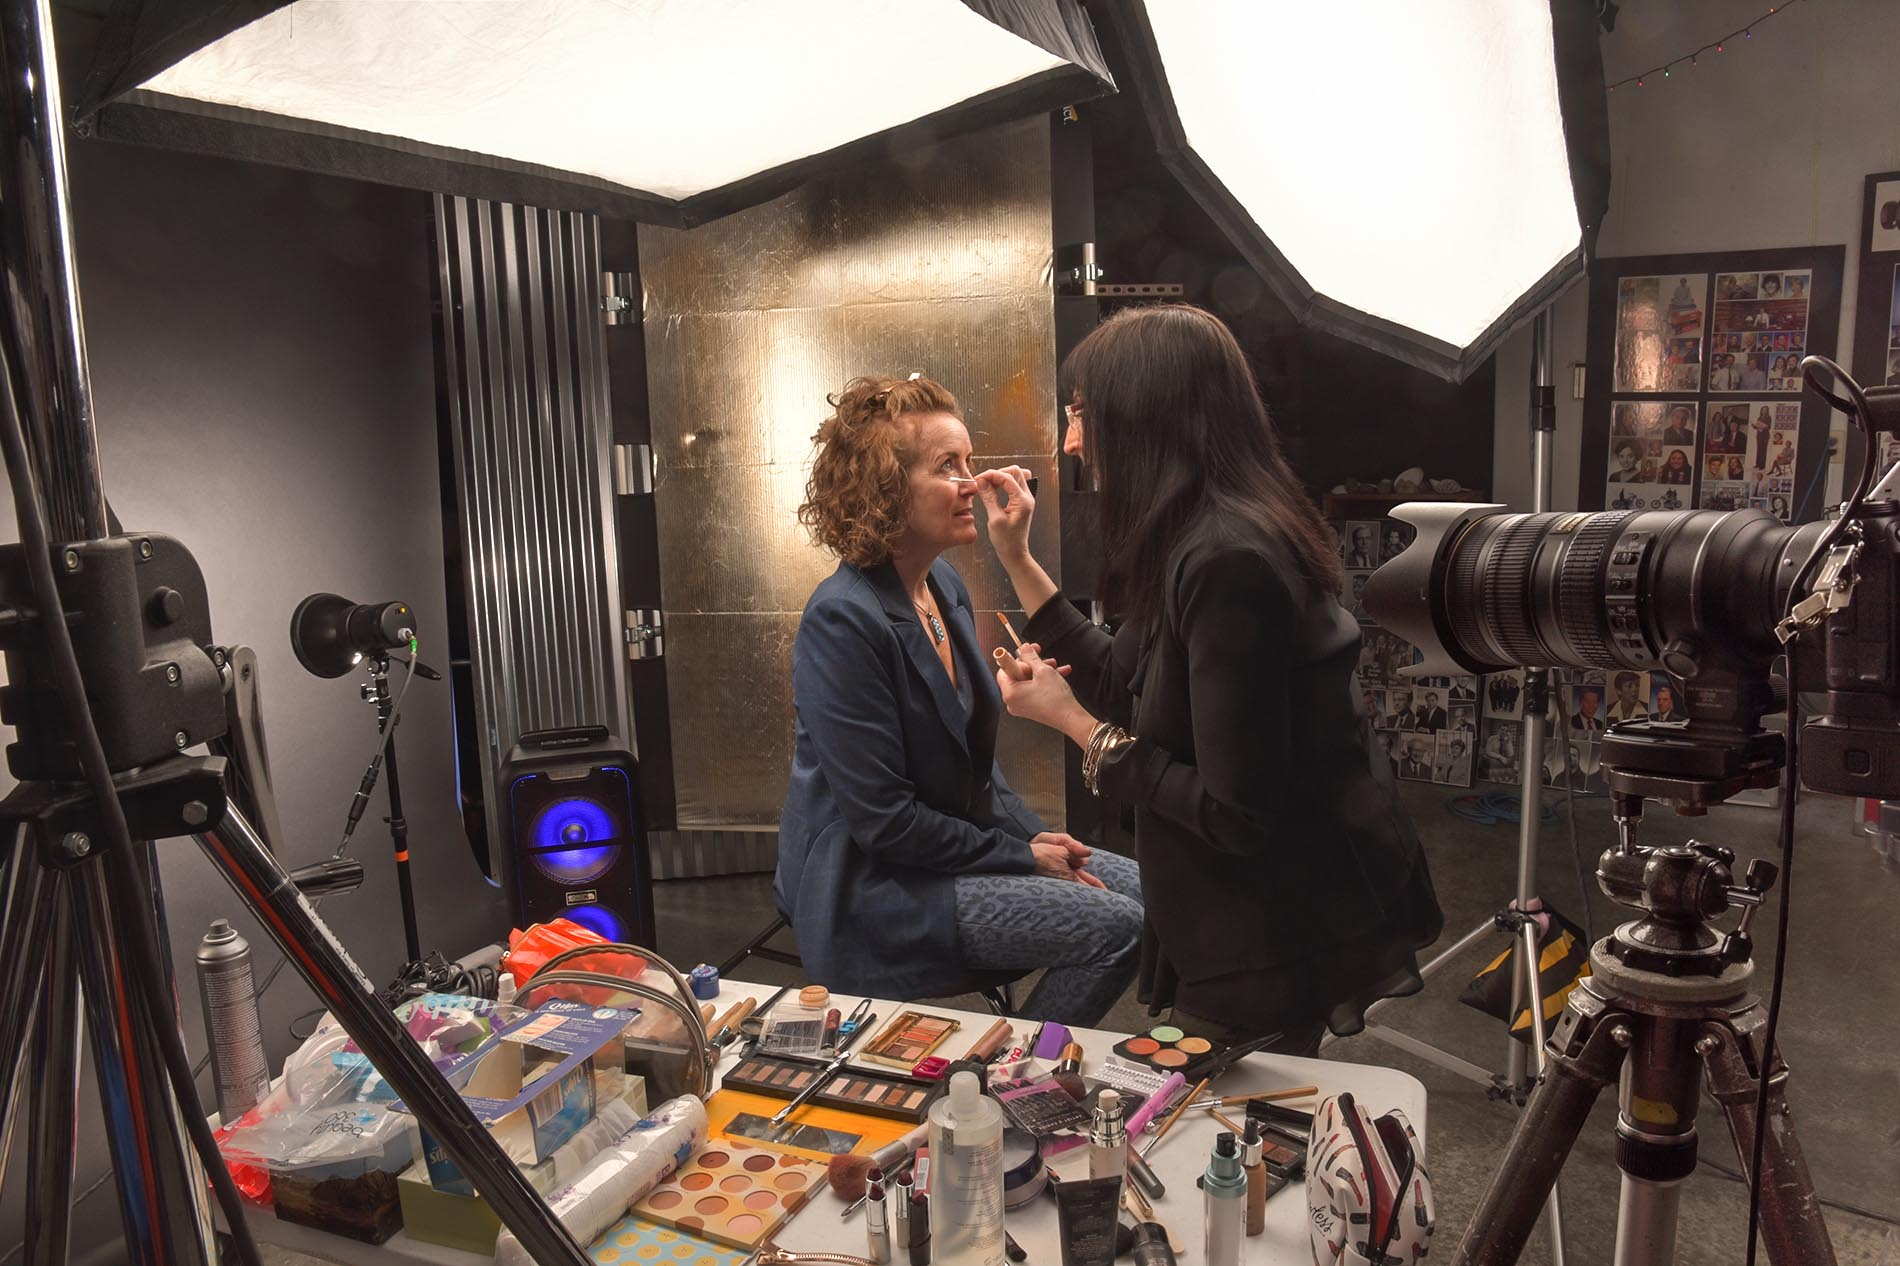 Behind the scenes makeup session in studio with Jacquelyn and Laura